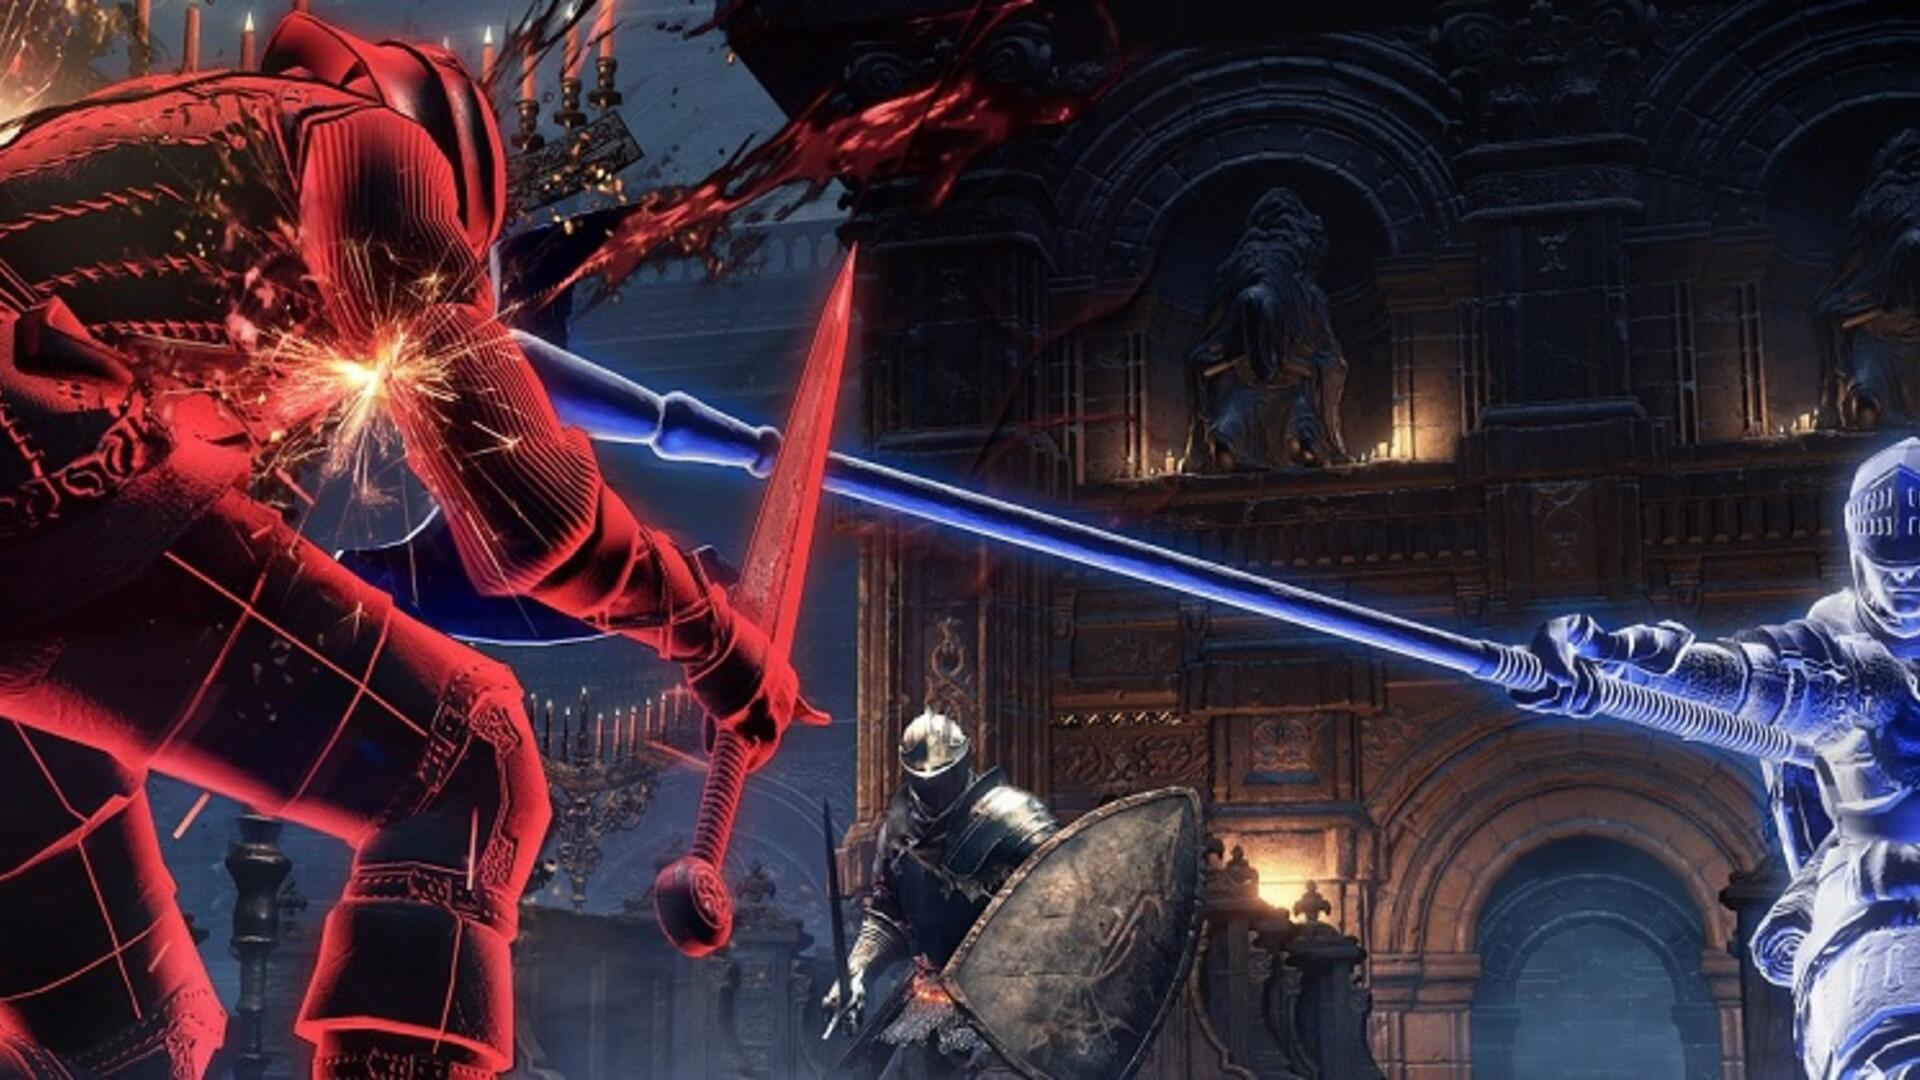 Dark Souls 3: How to Get the Red Eye Orb for PvP